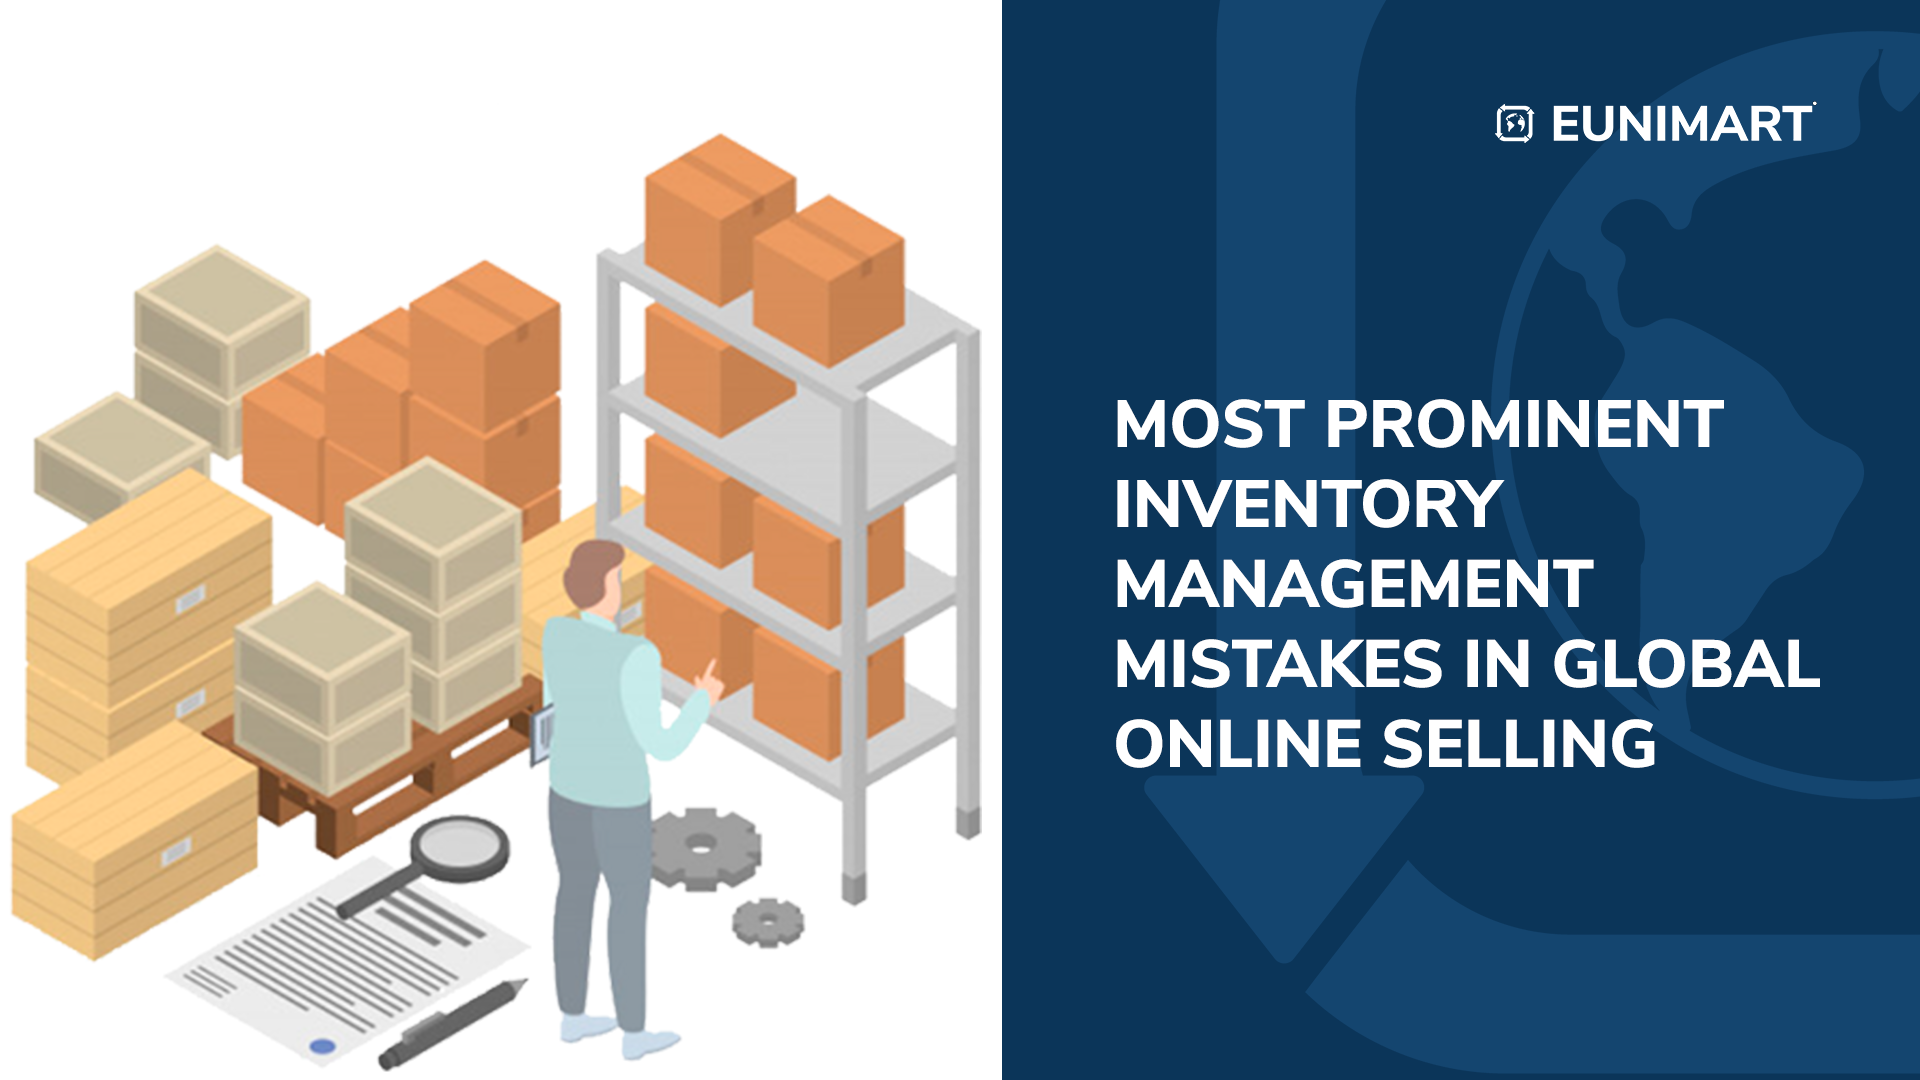 MOST PROMINENT INVENTORY MANAGEMENT MISTAKES IN GLOBAL ONLINE SELLING